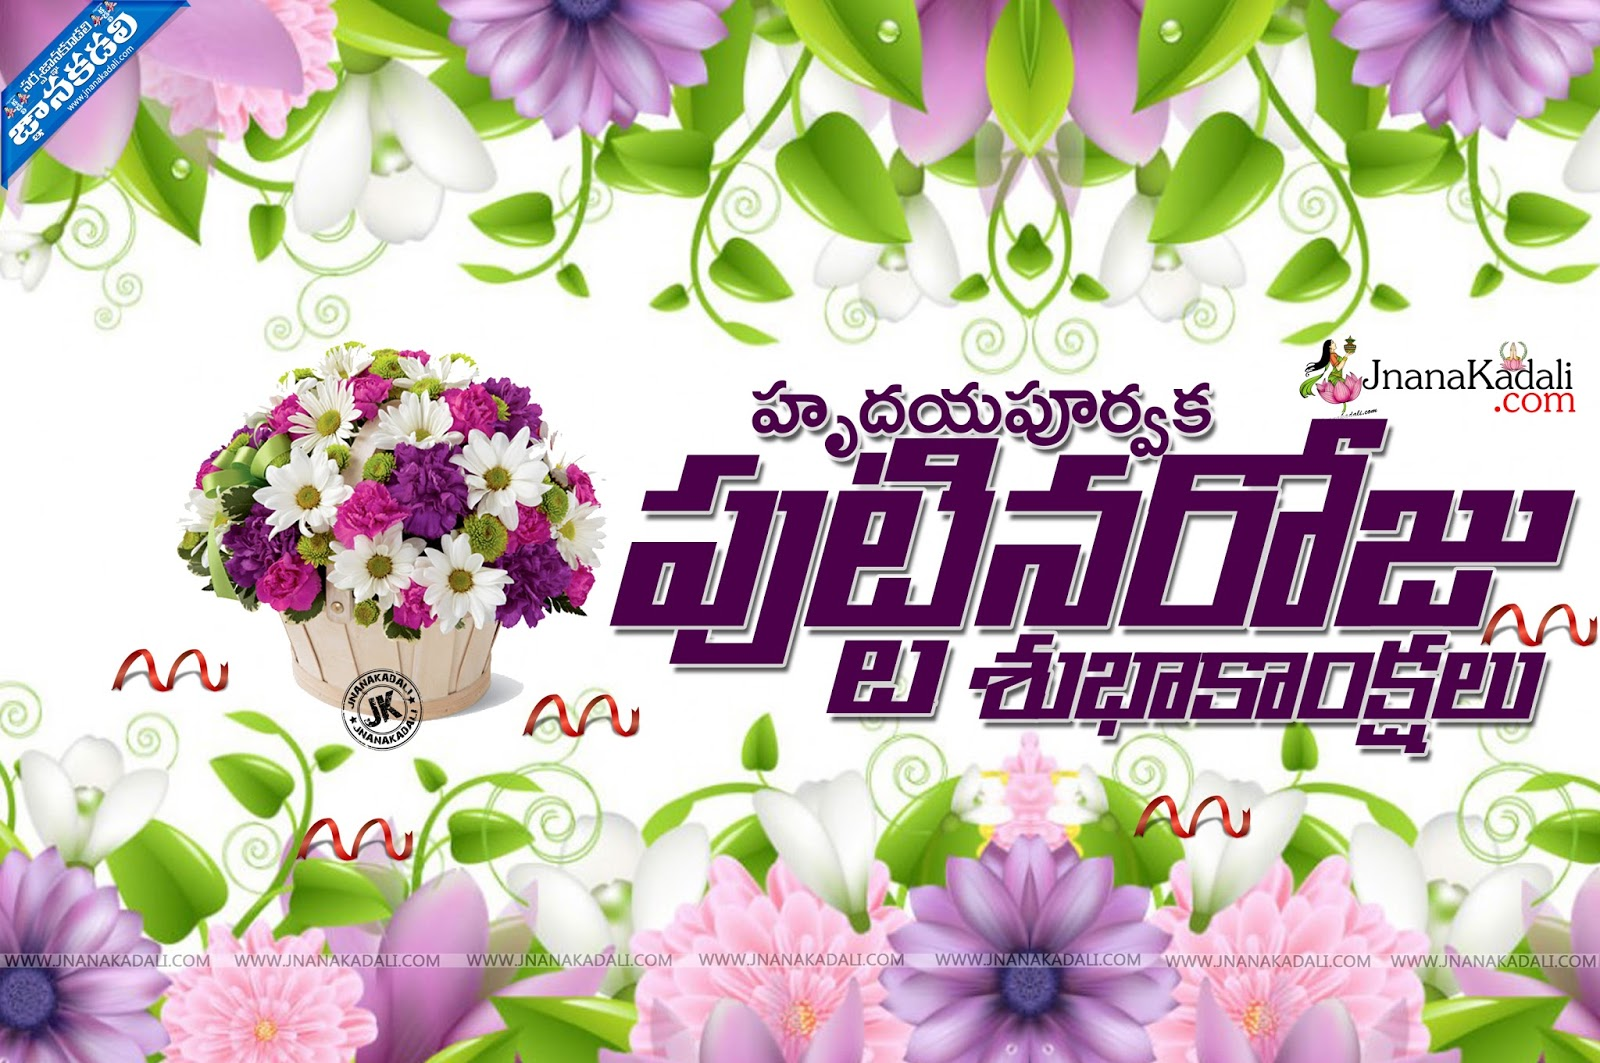 Here is Telugu Latest Birthday Quotes and Images online,Beautiful Birthday Greetings in Telugu, Top Telugu Birthday sms Quotes, Telugu Birthday Images for Boy friend, Telugu Birthday sms images for Best Friends, girls Telugu Birthday Quotes images, Top Telugu Birthday Wallpapers,latest Happy birthday quotes in telugu language, nice Telugu Birthday Pics Free, Top Telugu Birthday Top Messages Wallpapers, Awesome Telugu Birthday Quotes Images,birthday wishes in telugu text,happy birthday wishes in telugu language,birthday wishes in telugu script,birthday wishes in telugu quotes,birthday wishes in telugu images,birthday wishes in many languages,birthday wishes in telugu letters,birthday wishes in telugu kavithalu